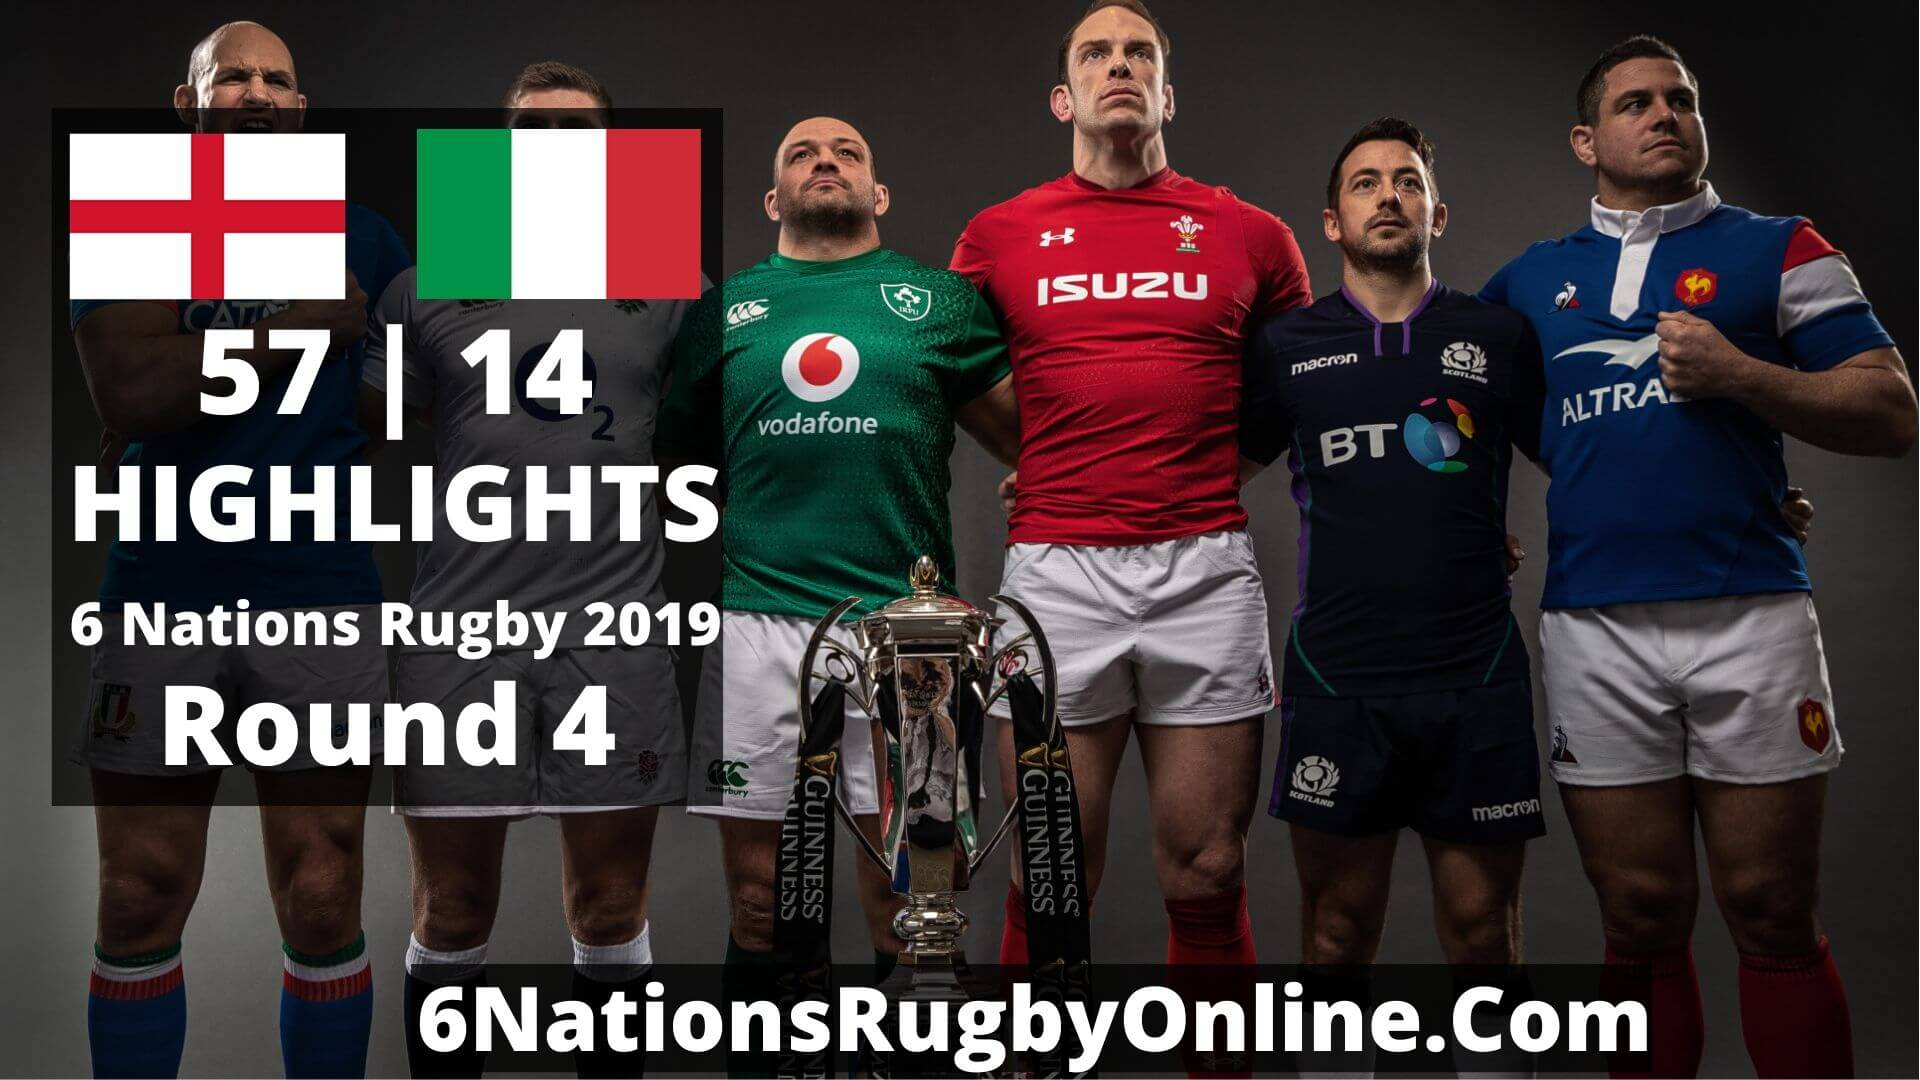 England Vs Italy Highlights 2019 Six Nations Rugby Round 4